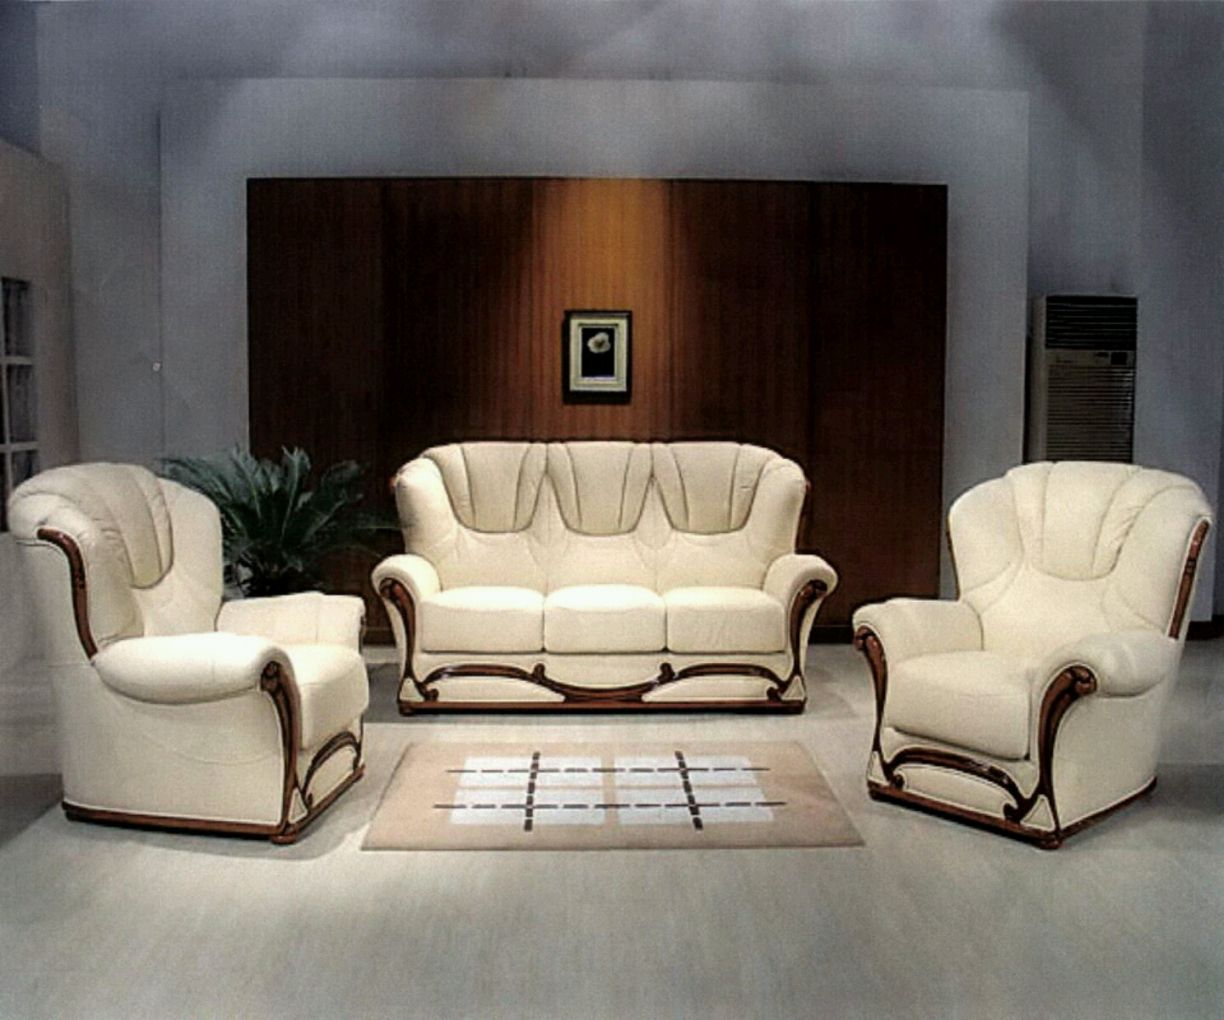 Modern Sofa Sets Best Collections Of Sofas And Couches Sofacouchs Com Modern Sofa Set Contemporary Sofa Set Living Room Sets Furniture